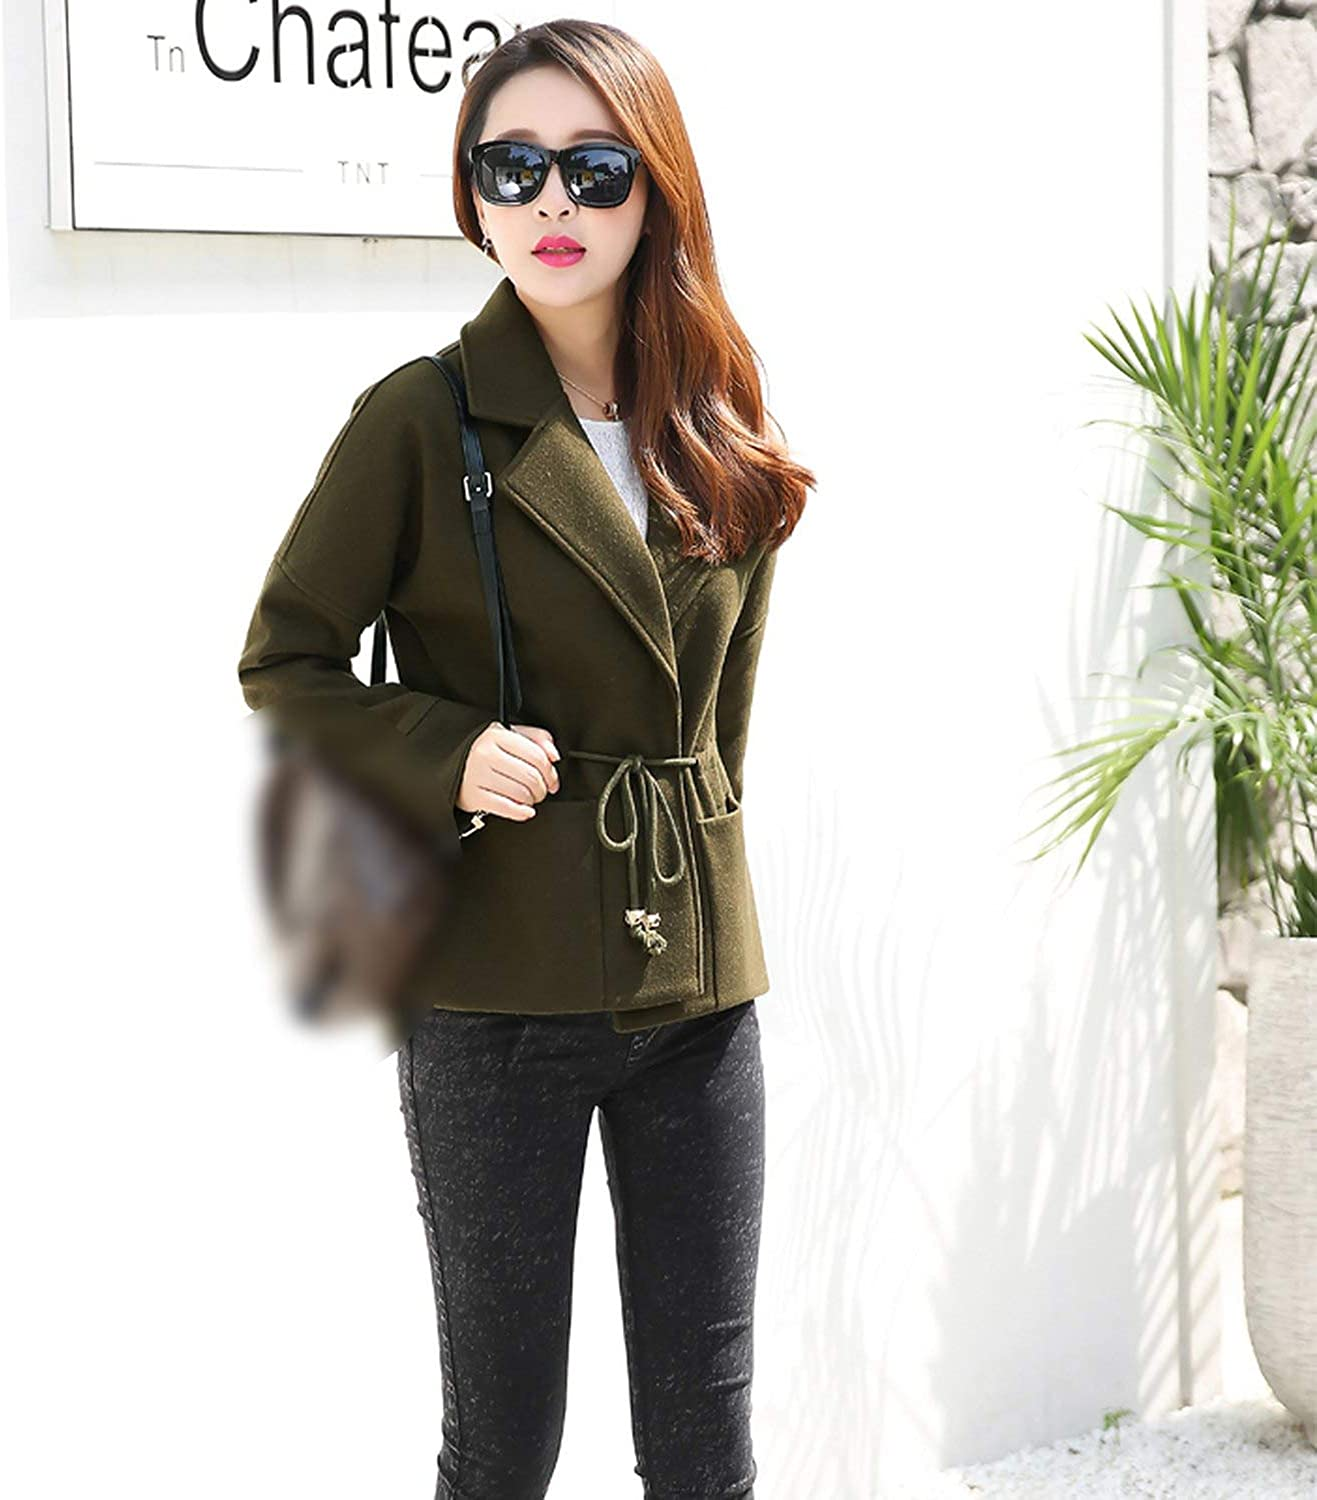 and Winter Short Woolen Coat Slim Casual Outerwear Clothing Solid Nine Sleeves Jacket,Beige,M